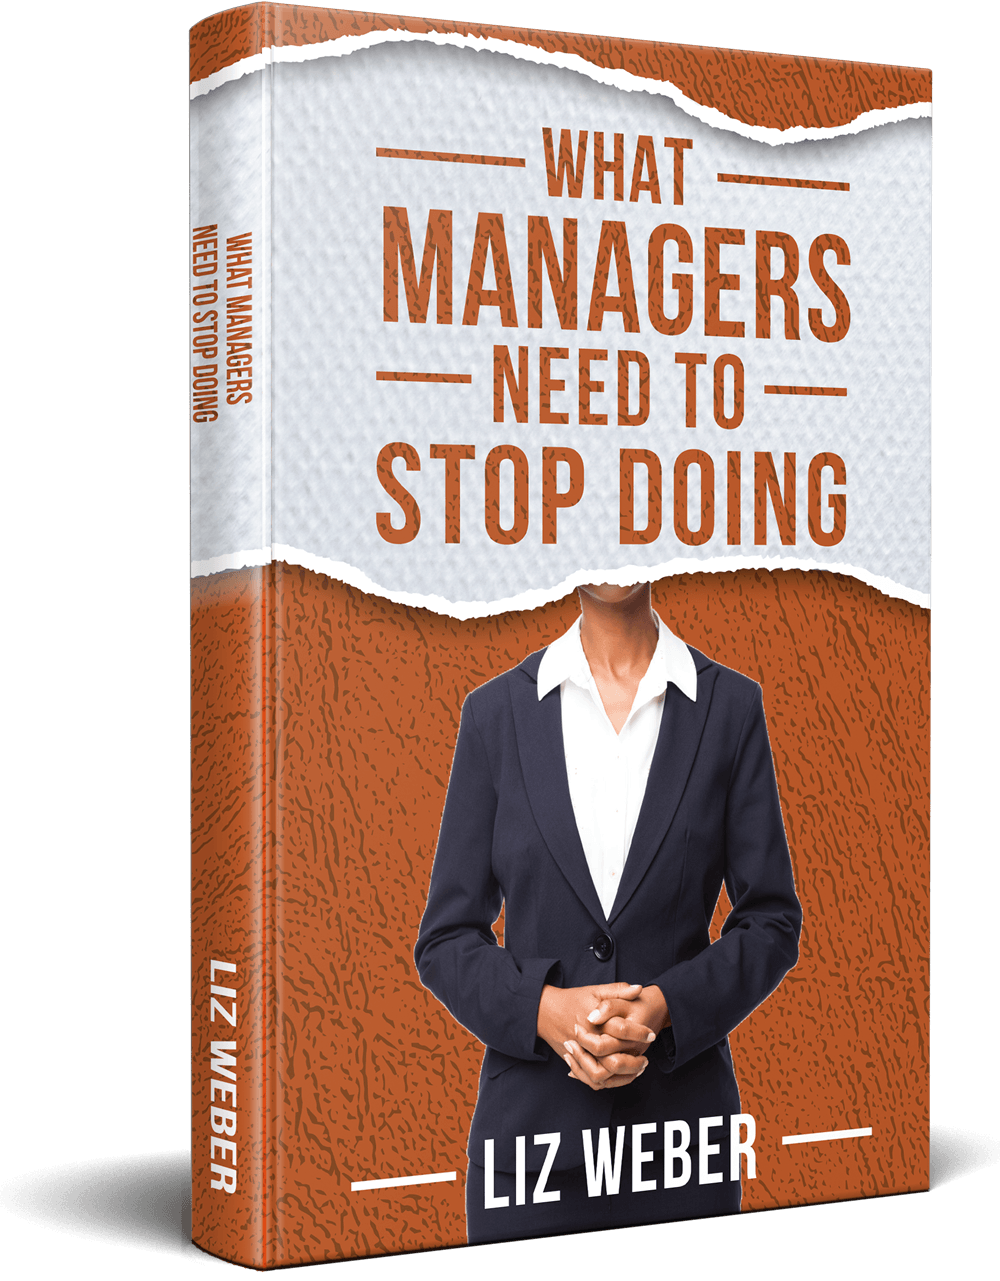 What Managers Need to Stop Doing